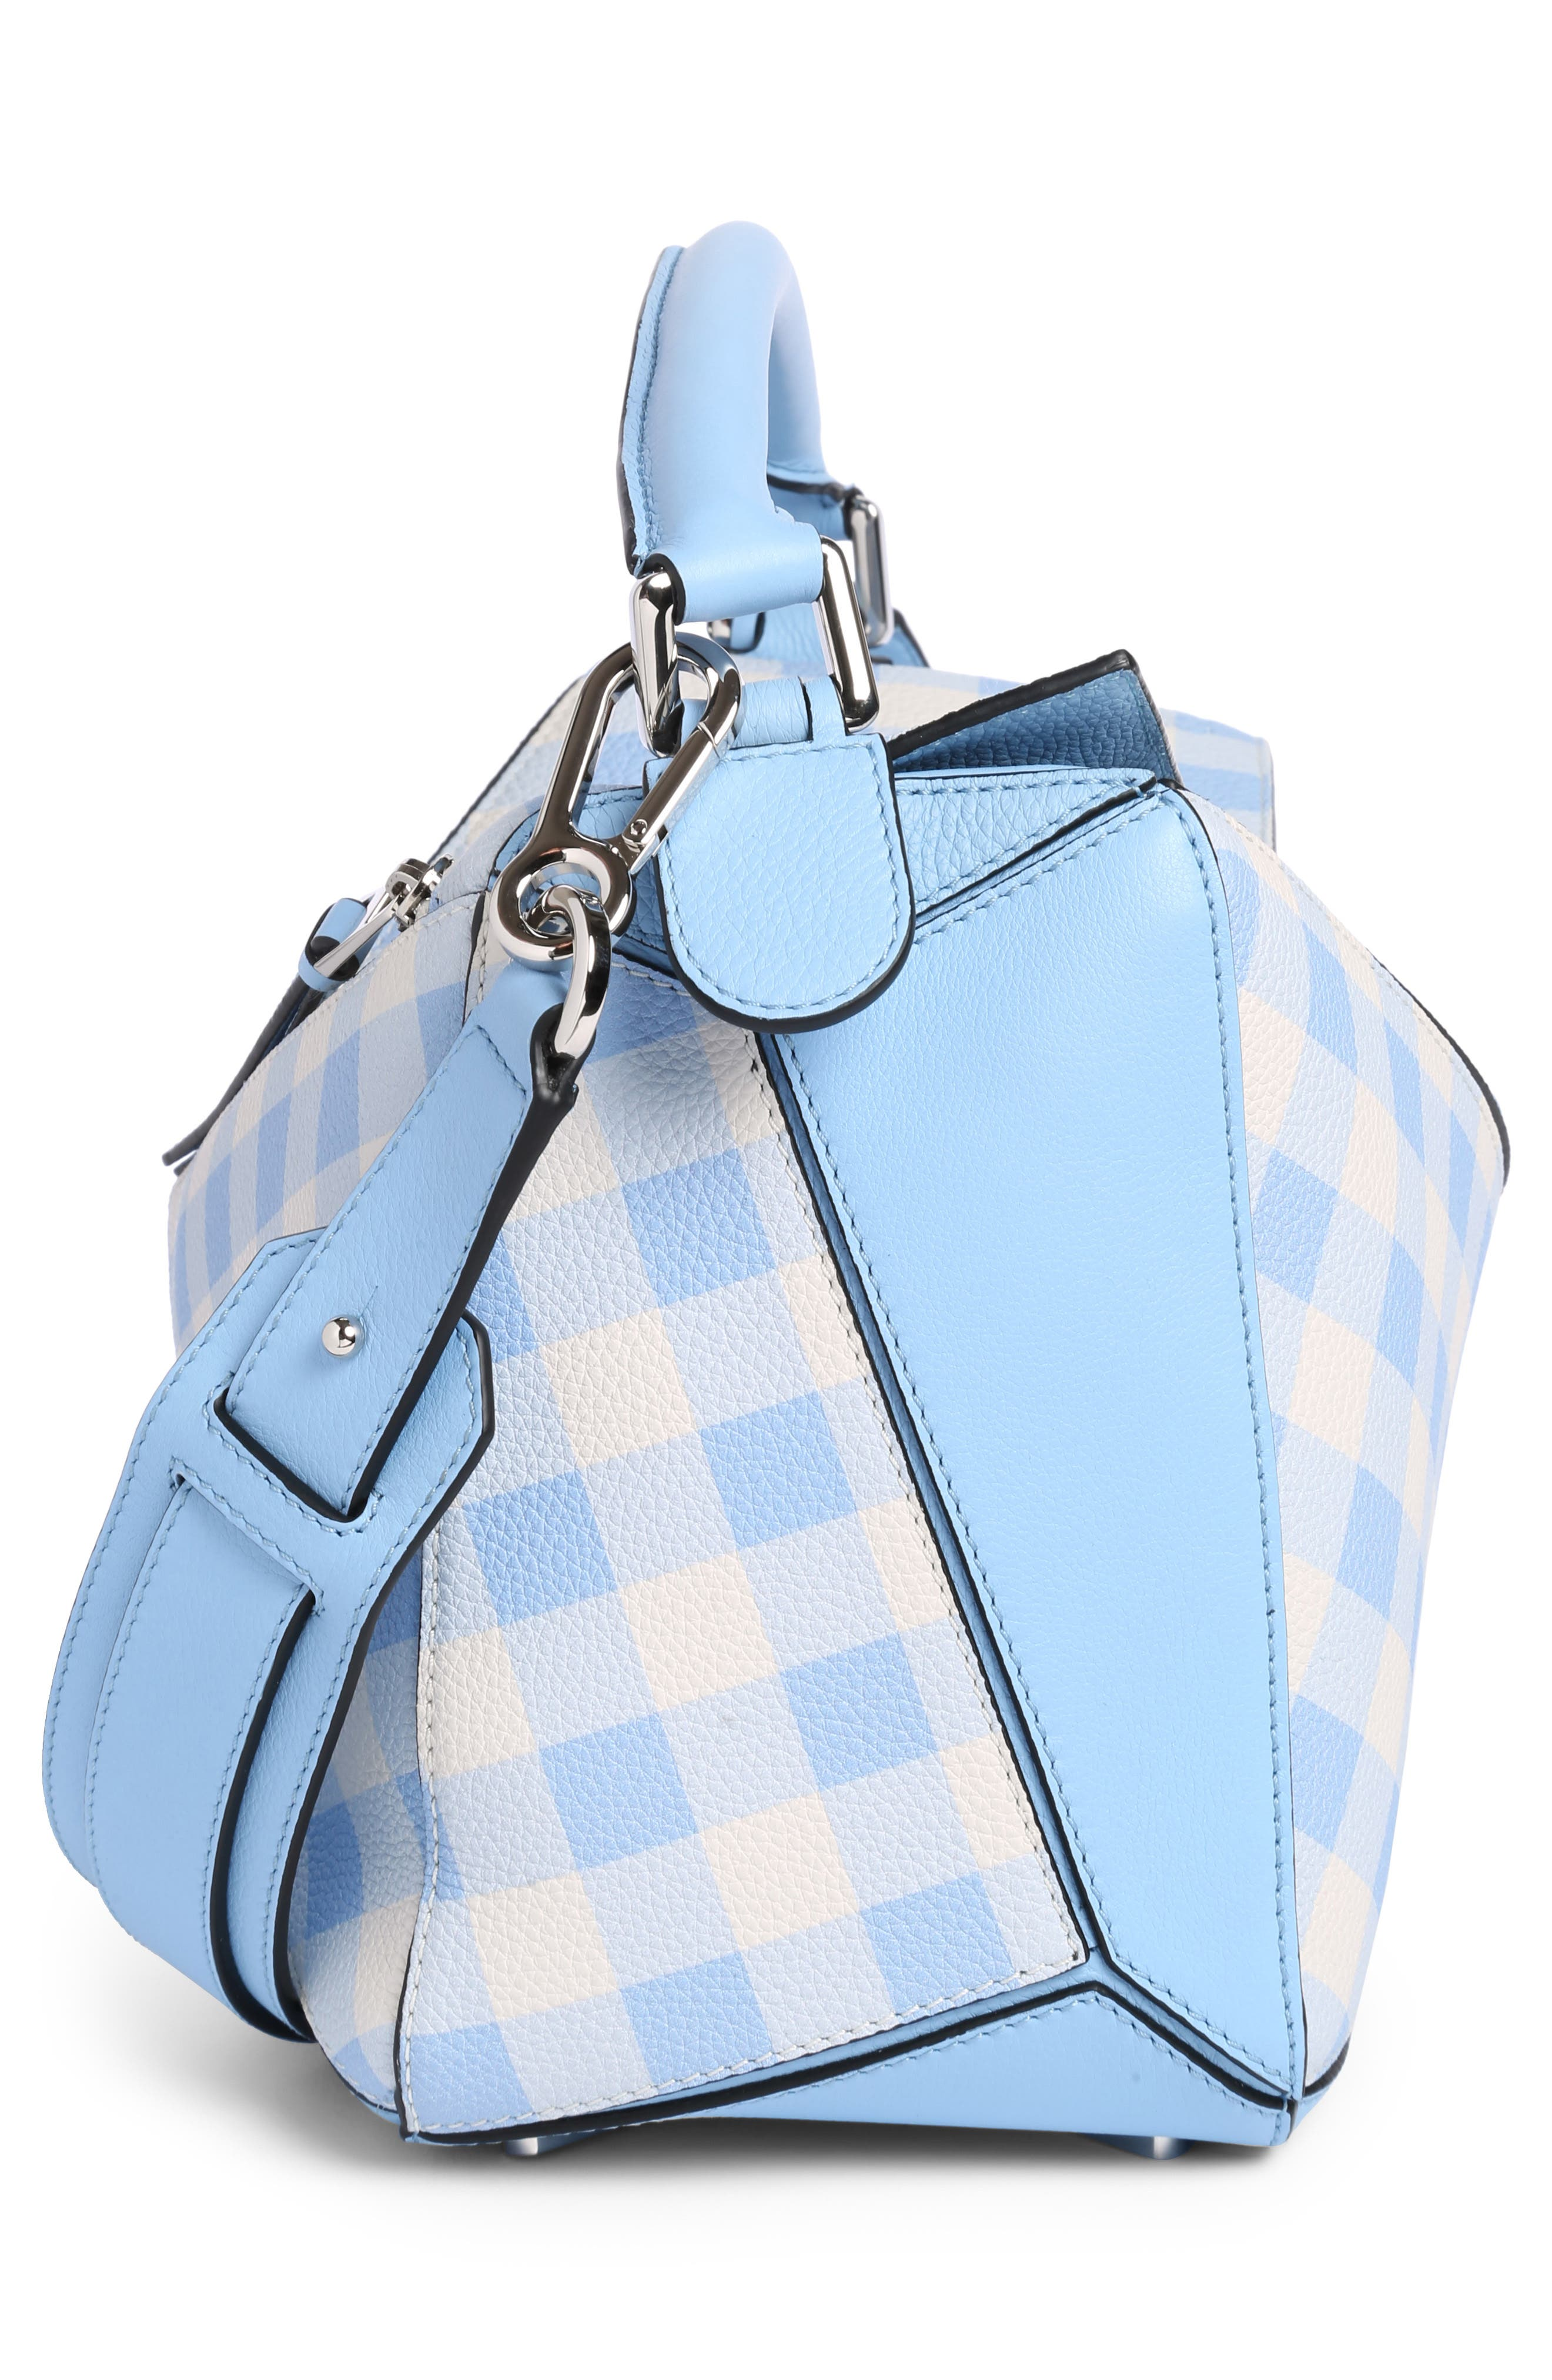 Puzzle Gingham Calfskin Leather Bag,                             Alternate thumbnail 3, color,                             455